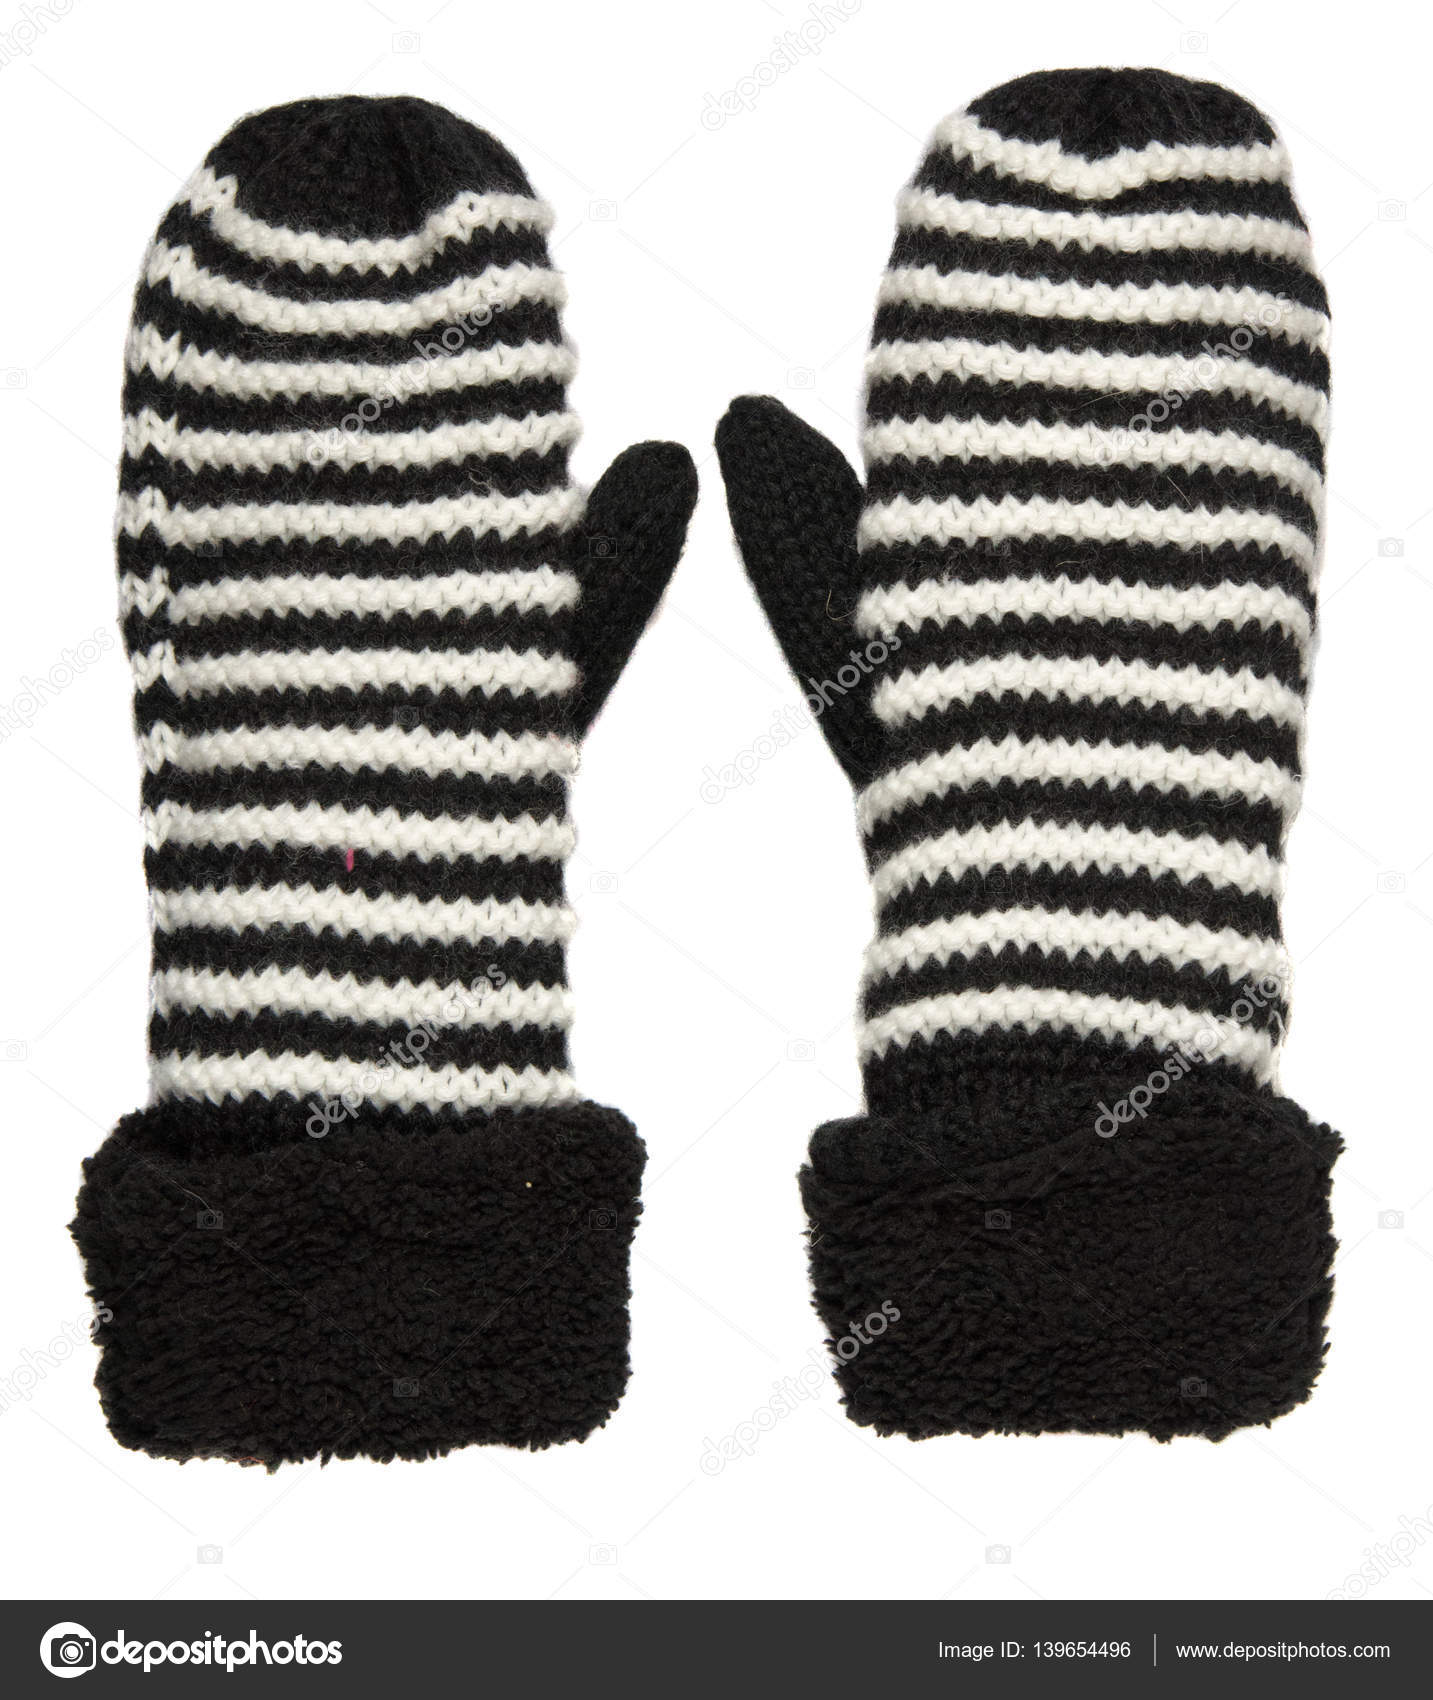 Mitten isolated on white background. Knitted mittens. Mittens to ...